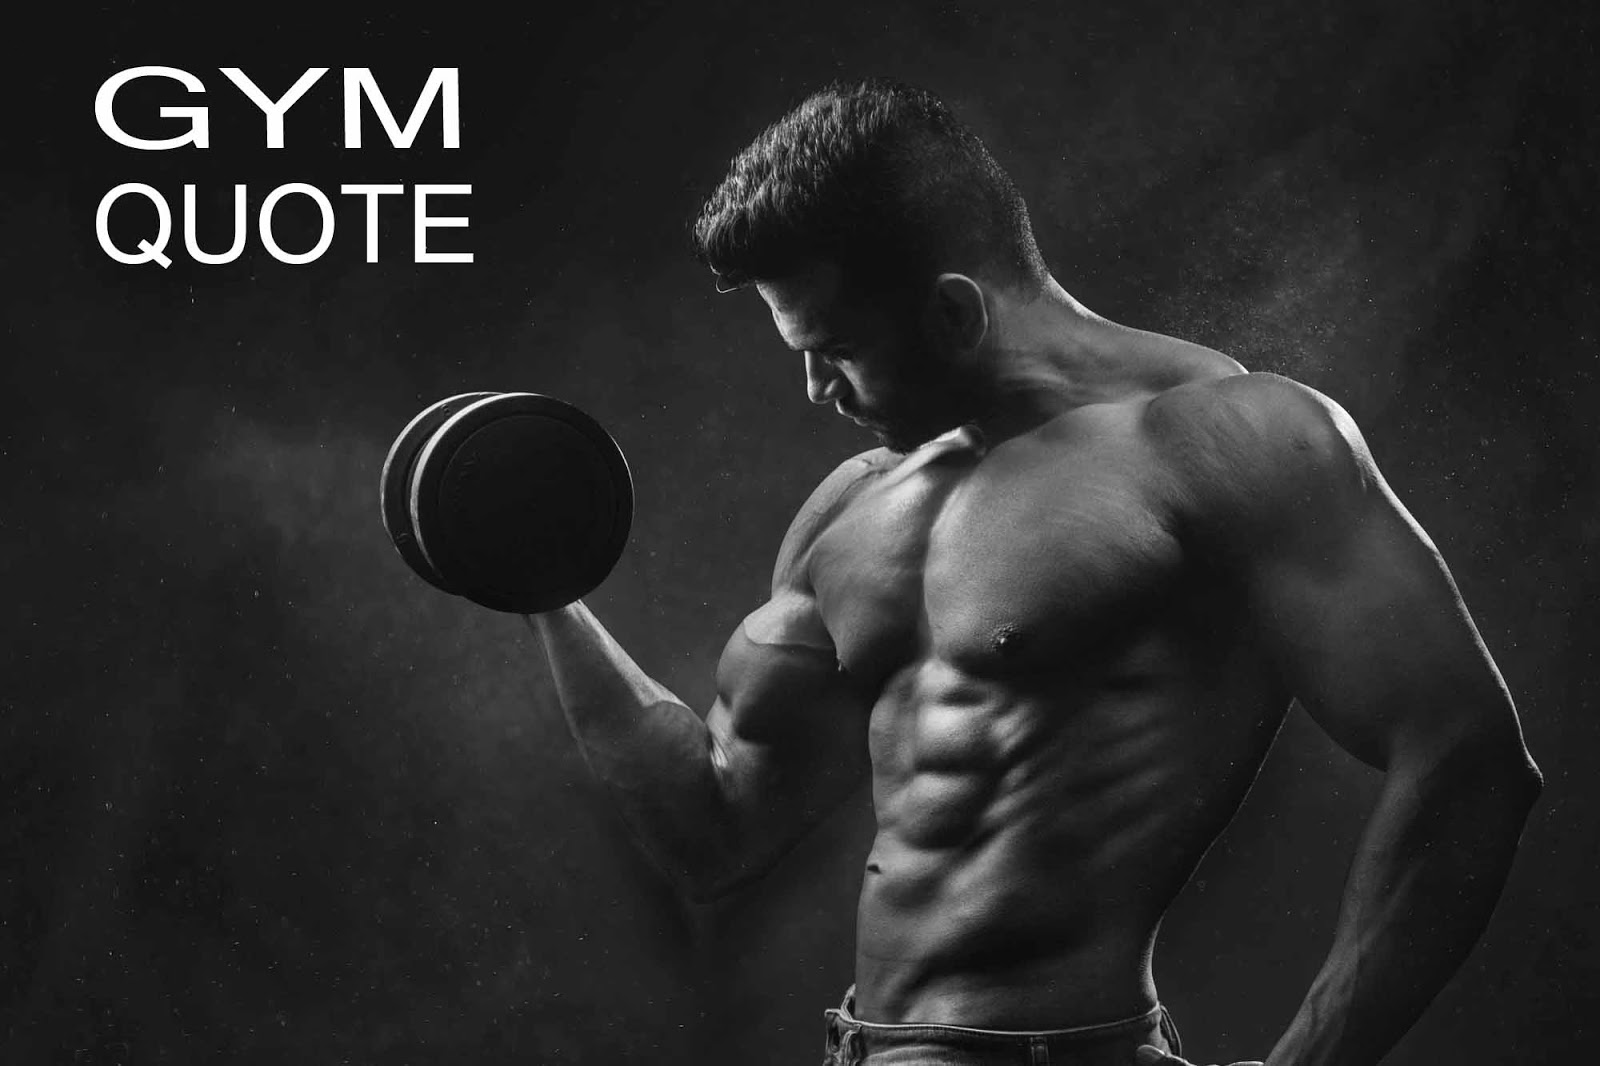 Gym Quotes Best Gym Motivation Quotes Bodybuilding Quotes 2020